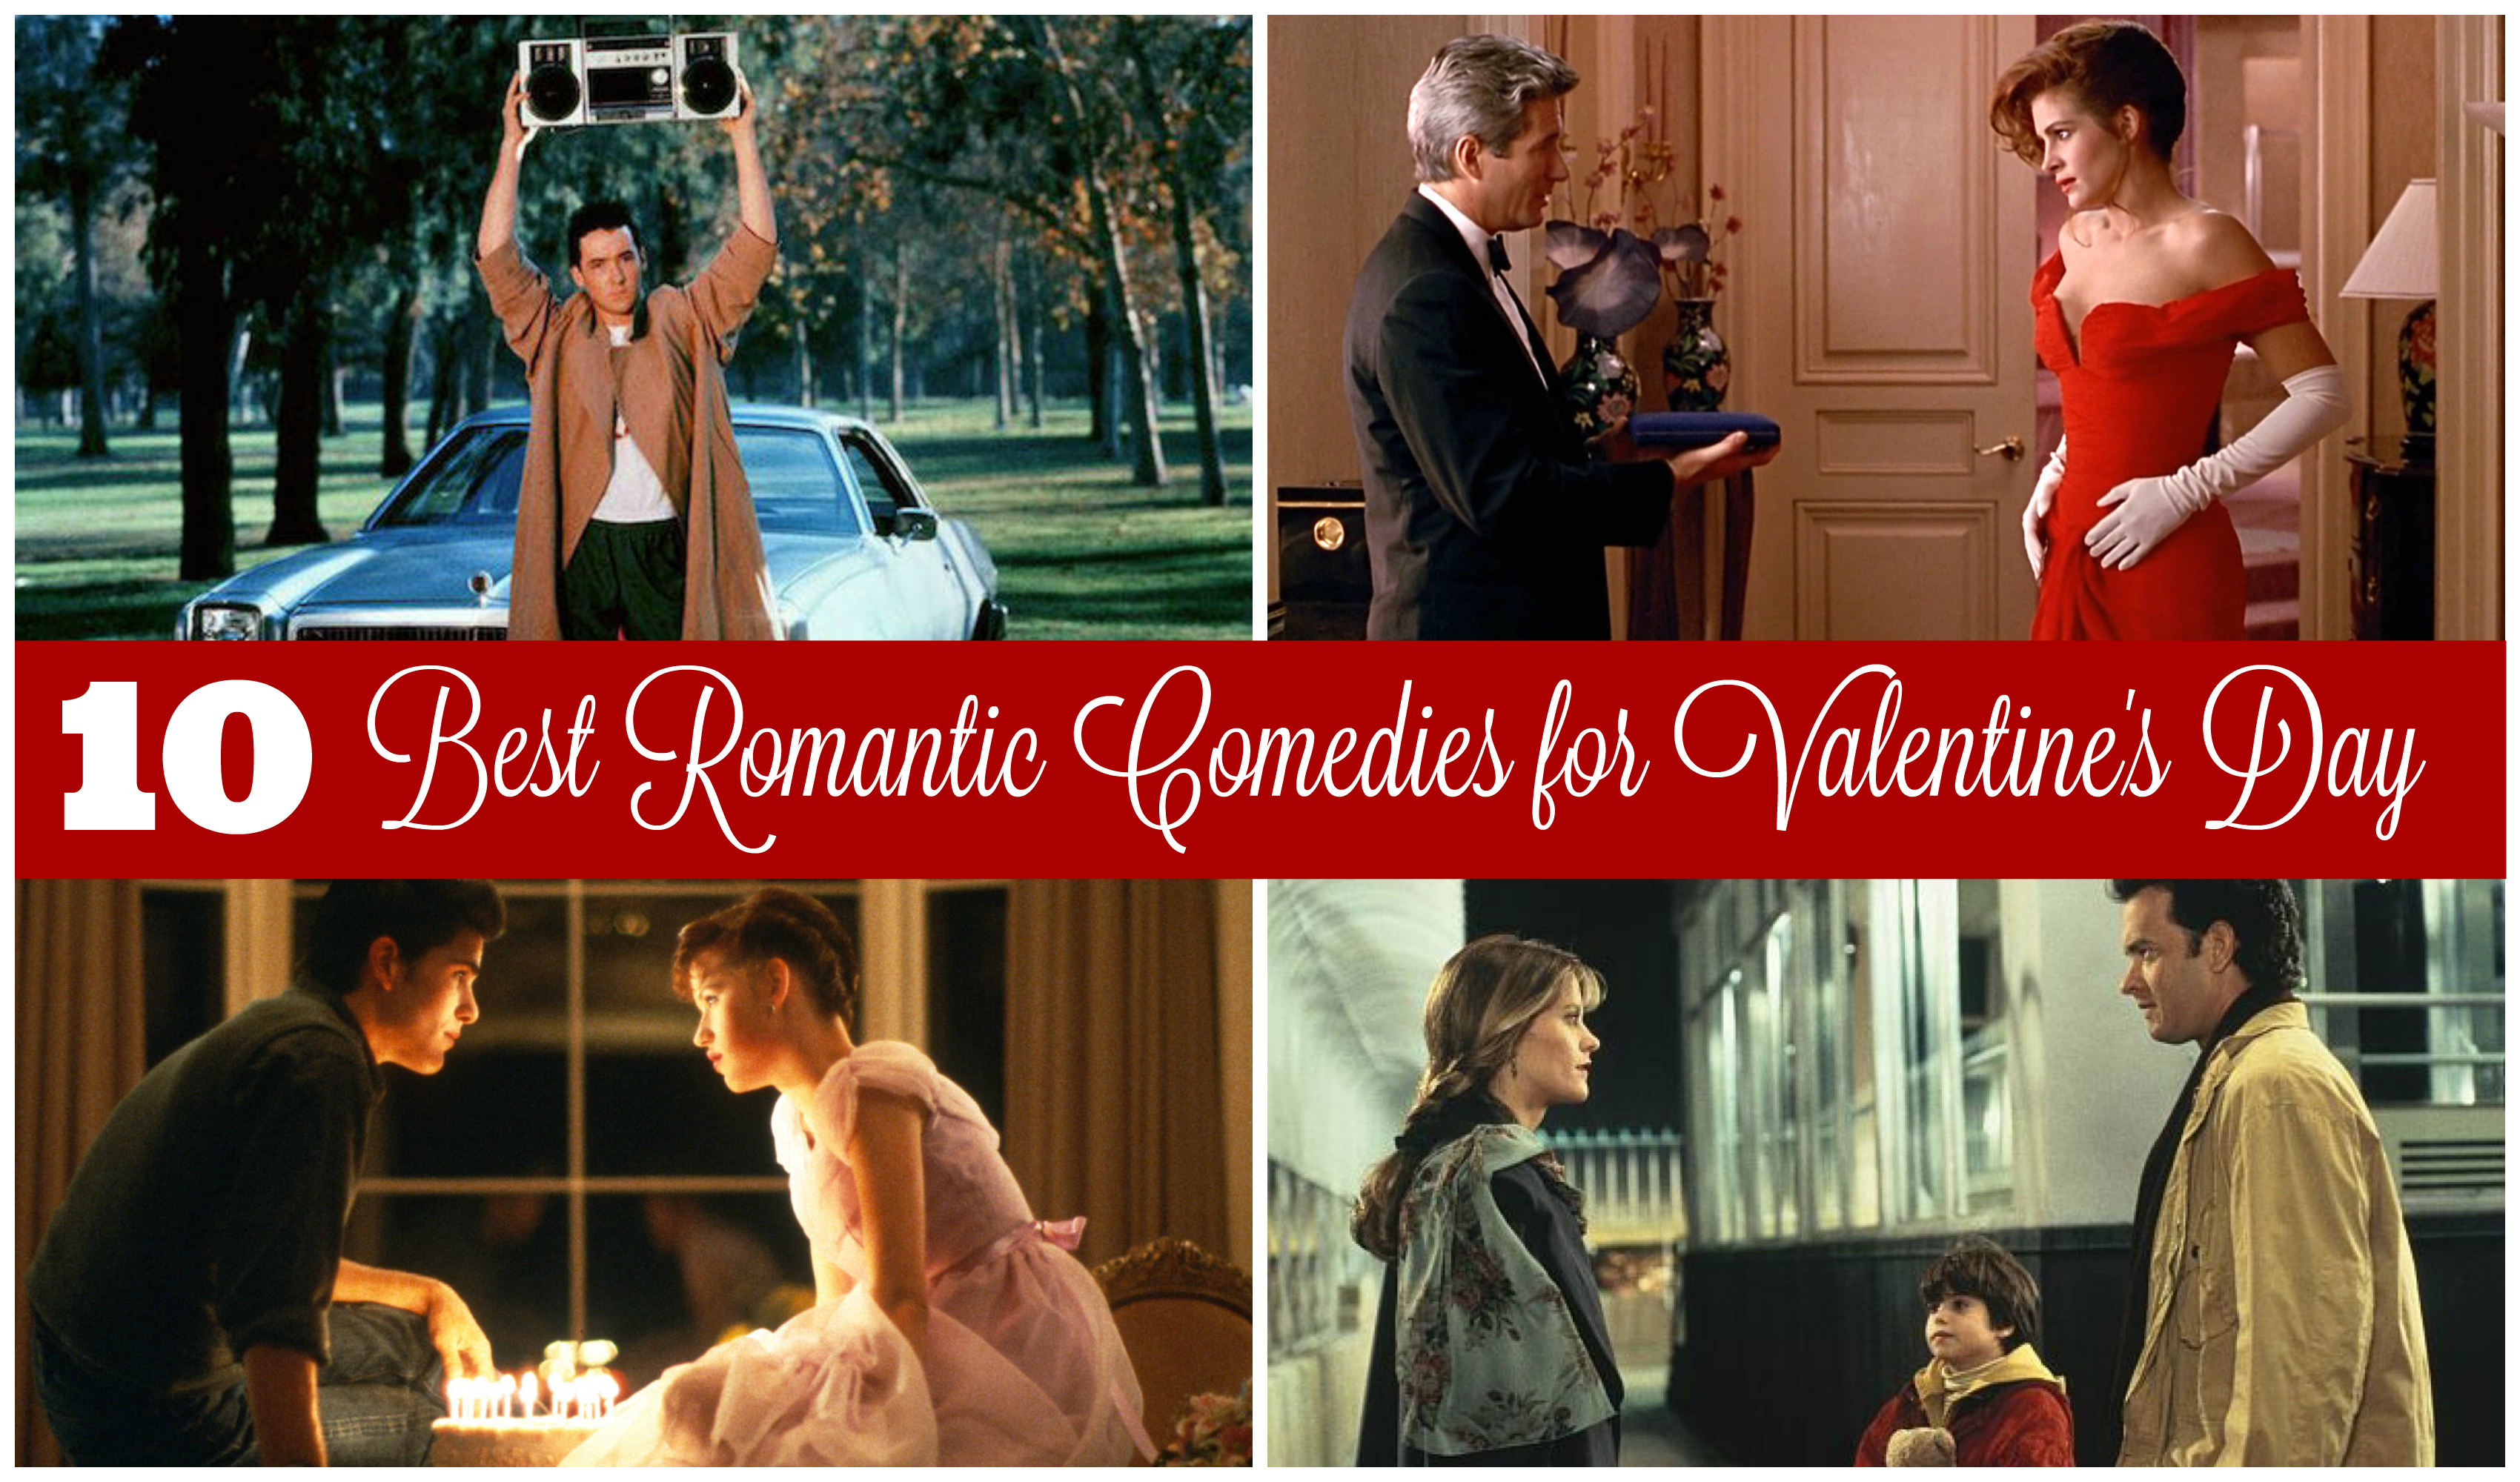 Top 10 Best Romantic Comedies For Valentines Day R We There Yet Mom